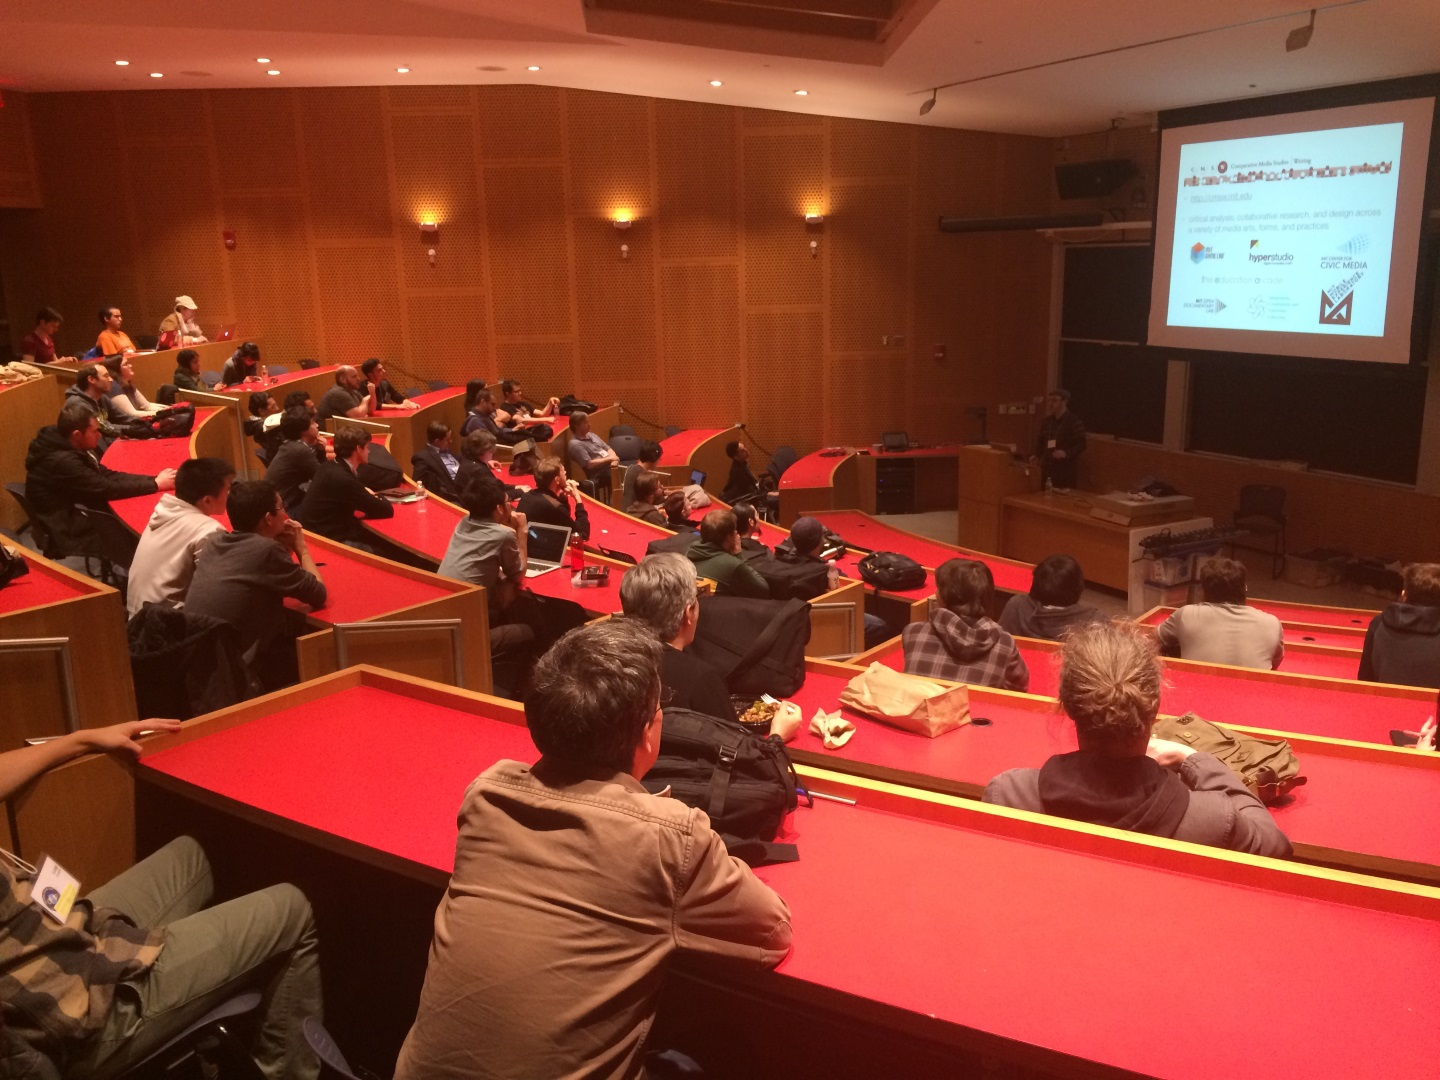 Global Game Jam 2015 starting up @ MIT Cambridge!